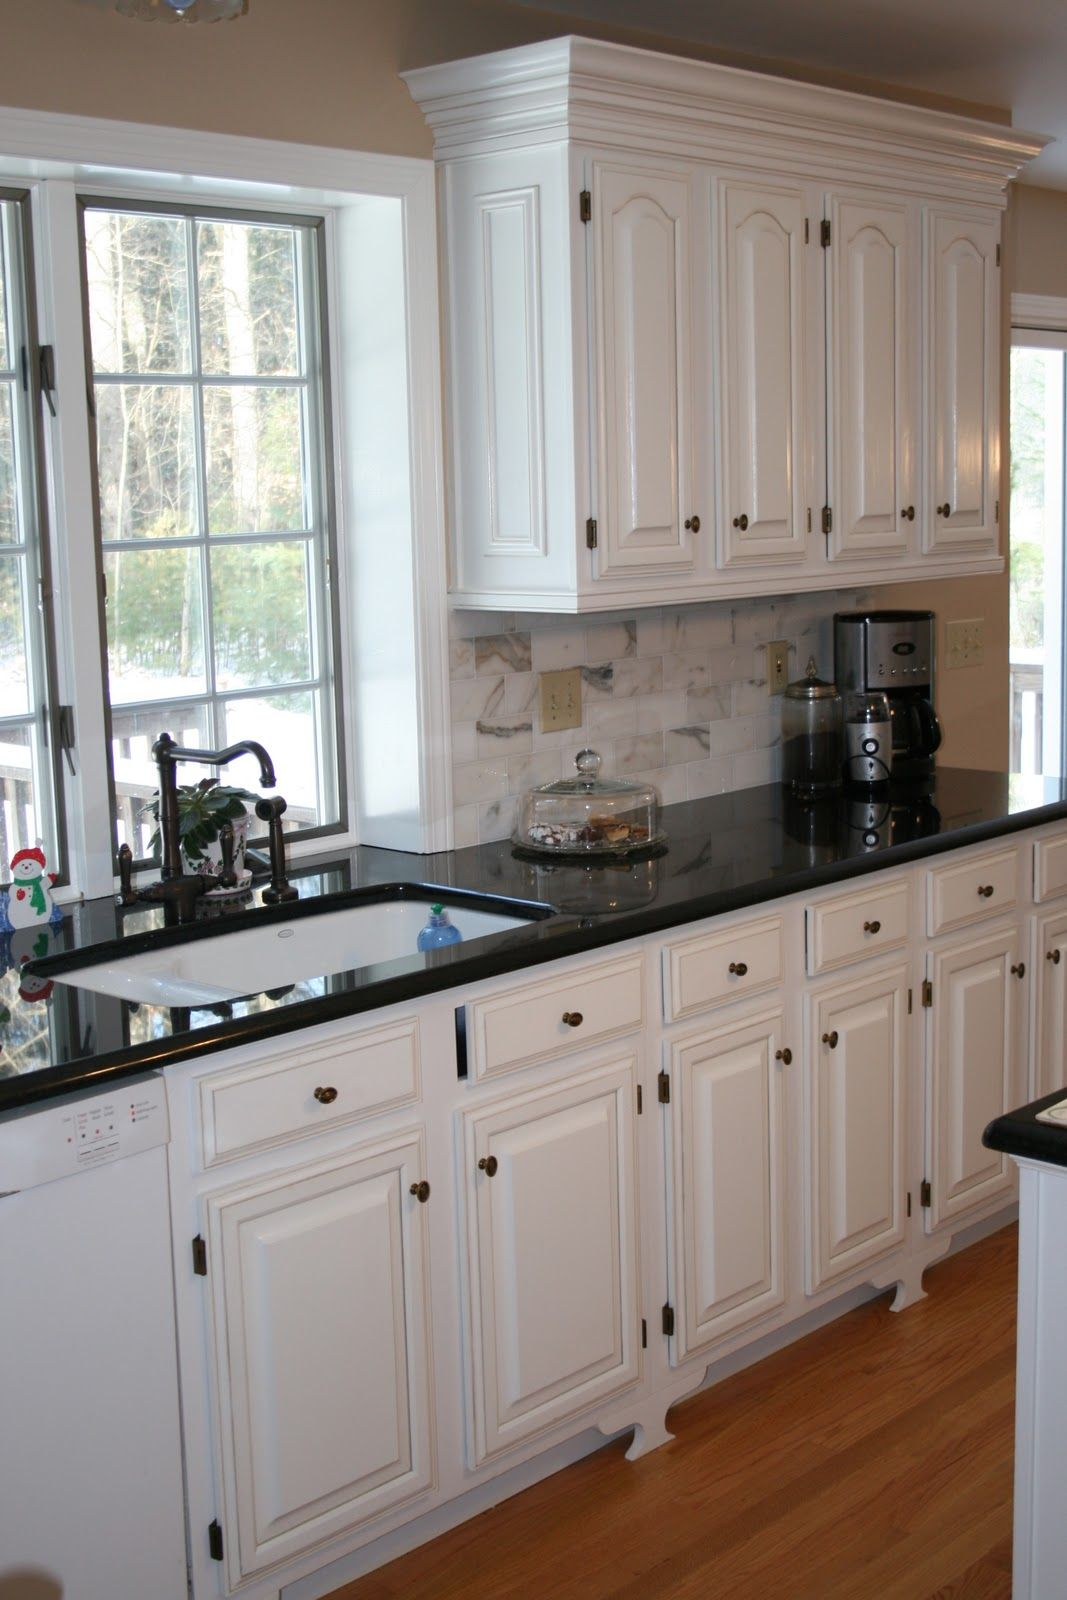 Kitchen Cabinet Colors For Black Countertops white cabinets black countertops and that faucet | city heights